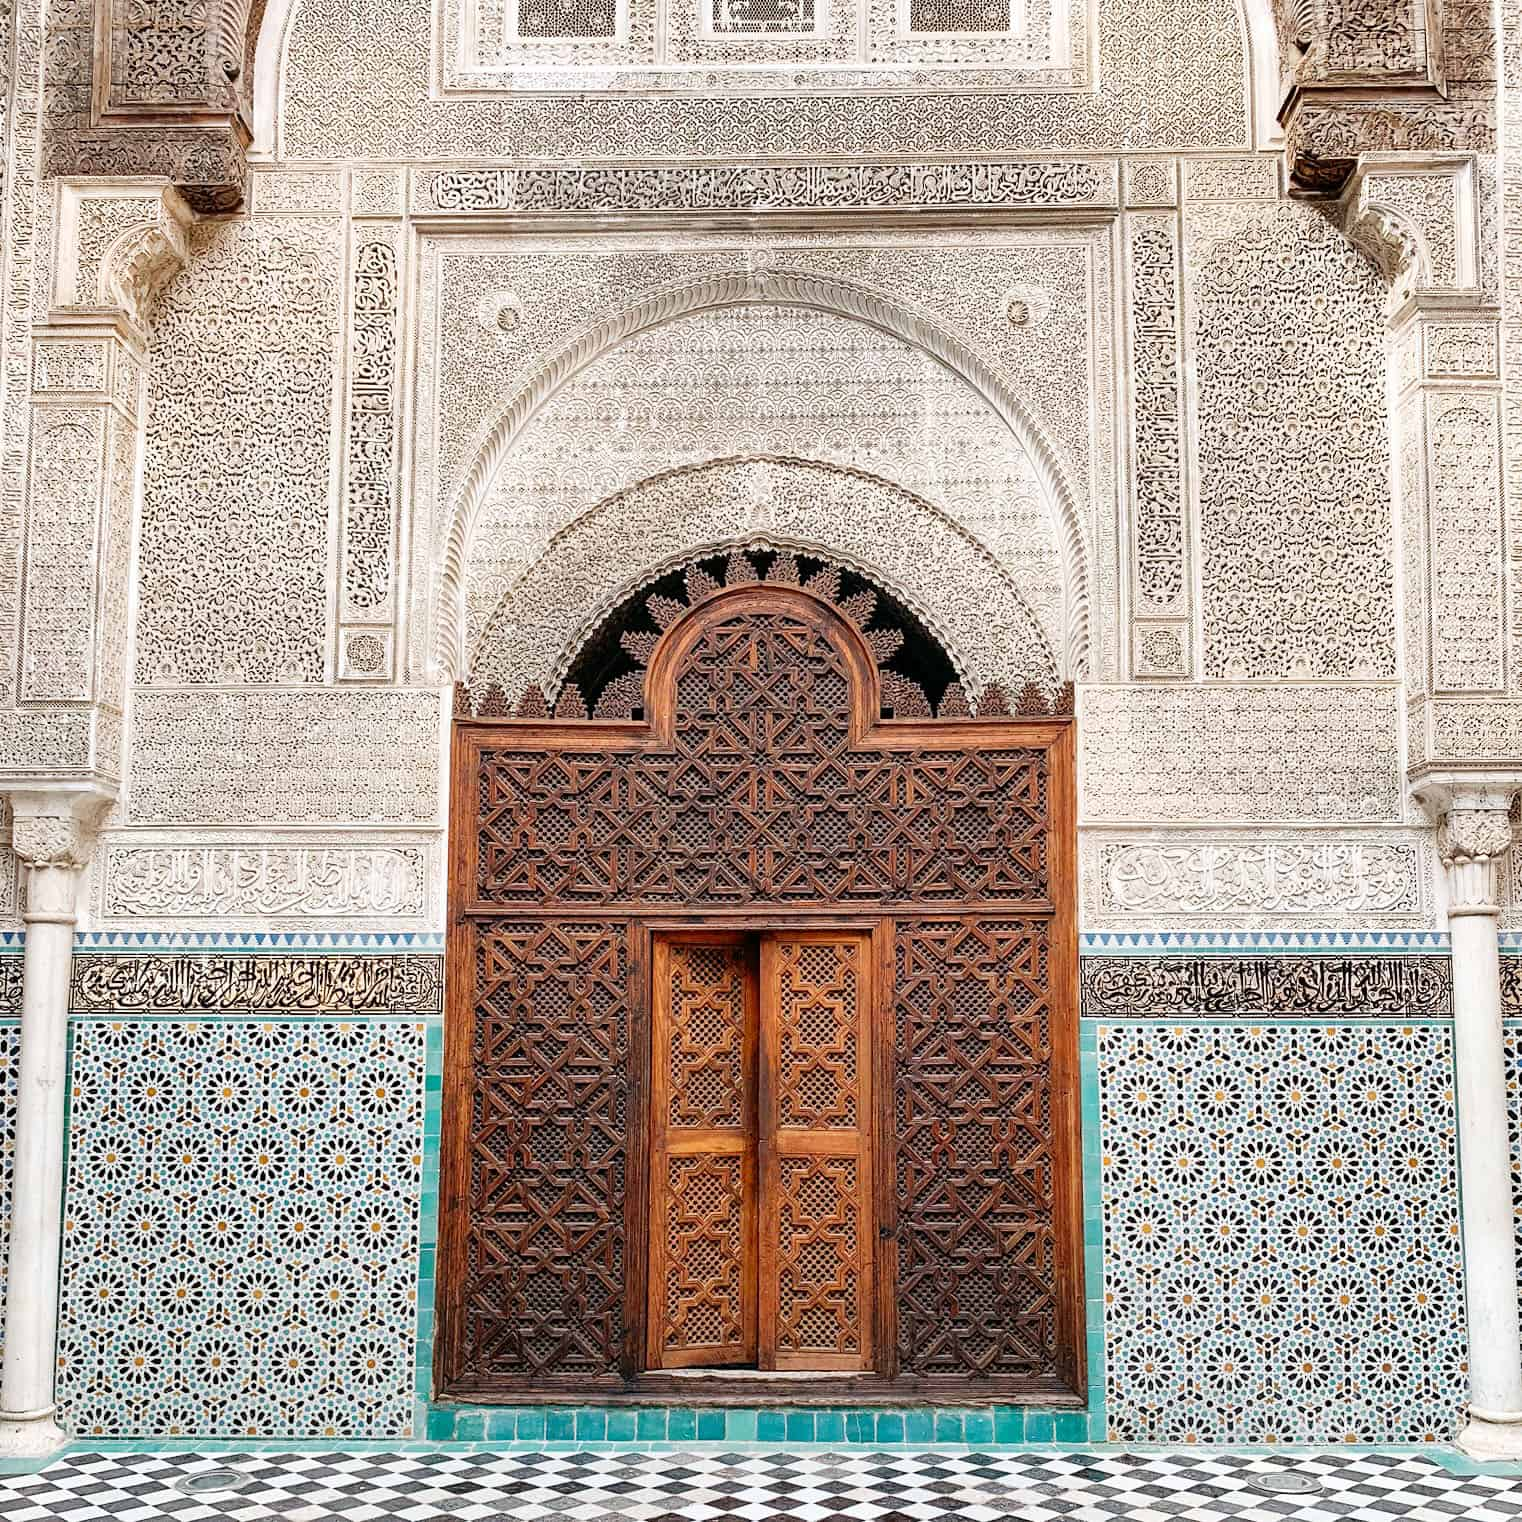 Lizzie & Kathryn's Guide To Fez, Morocco 8